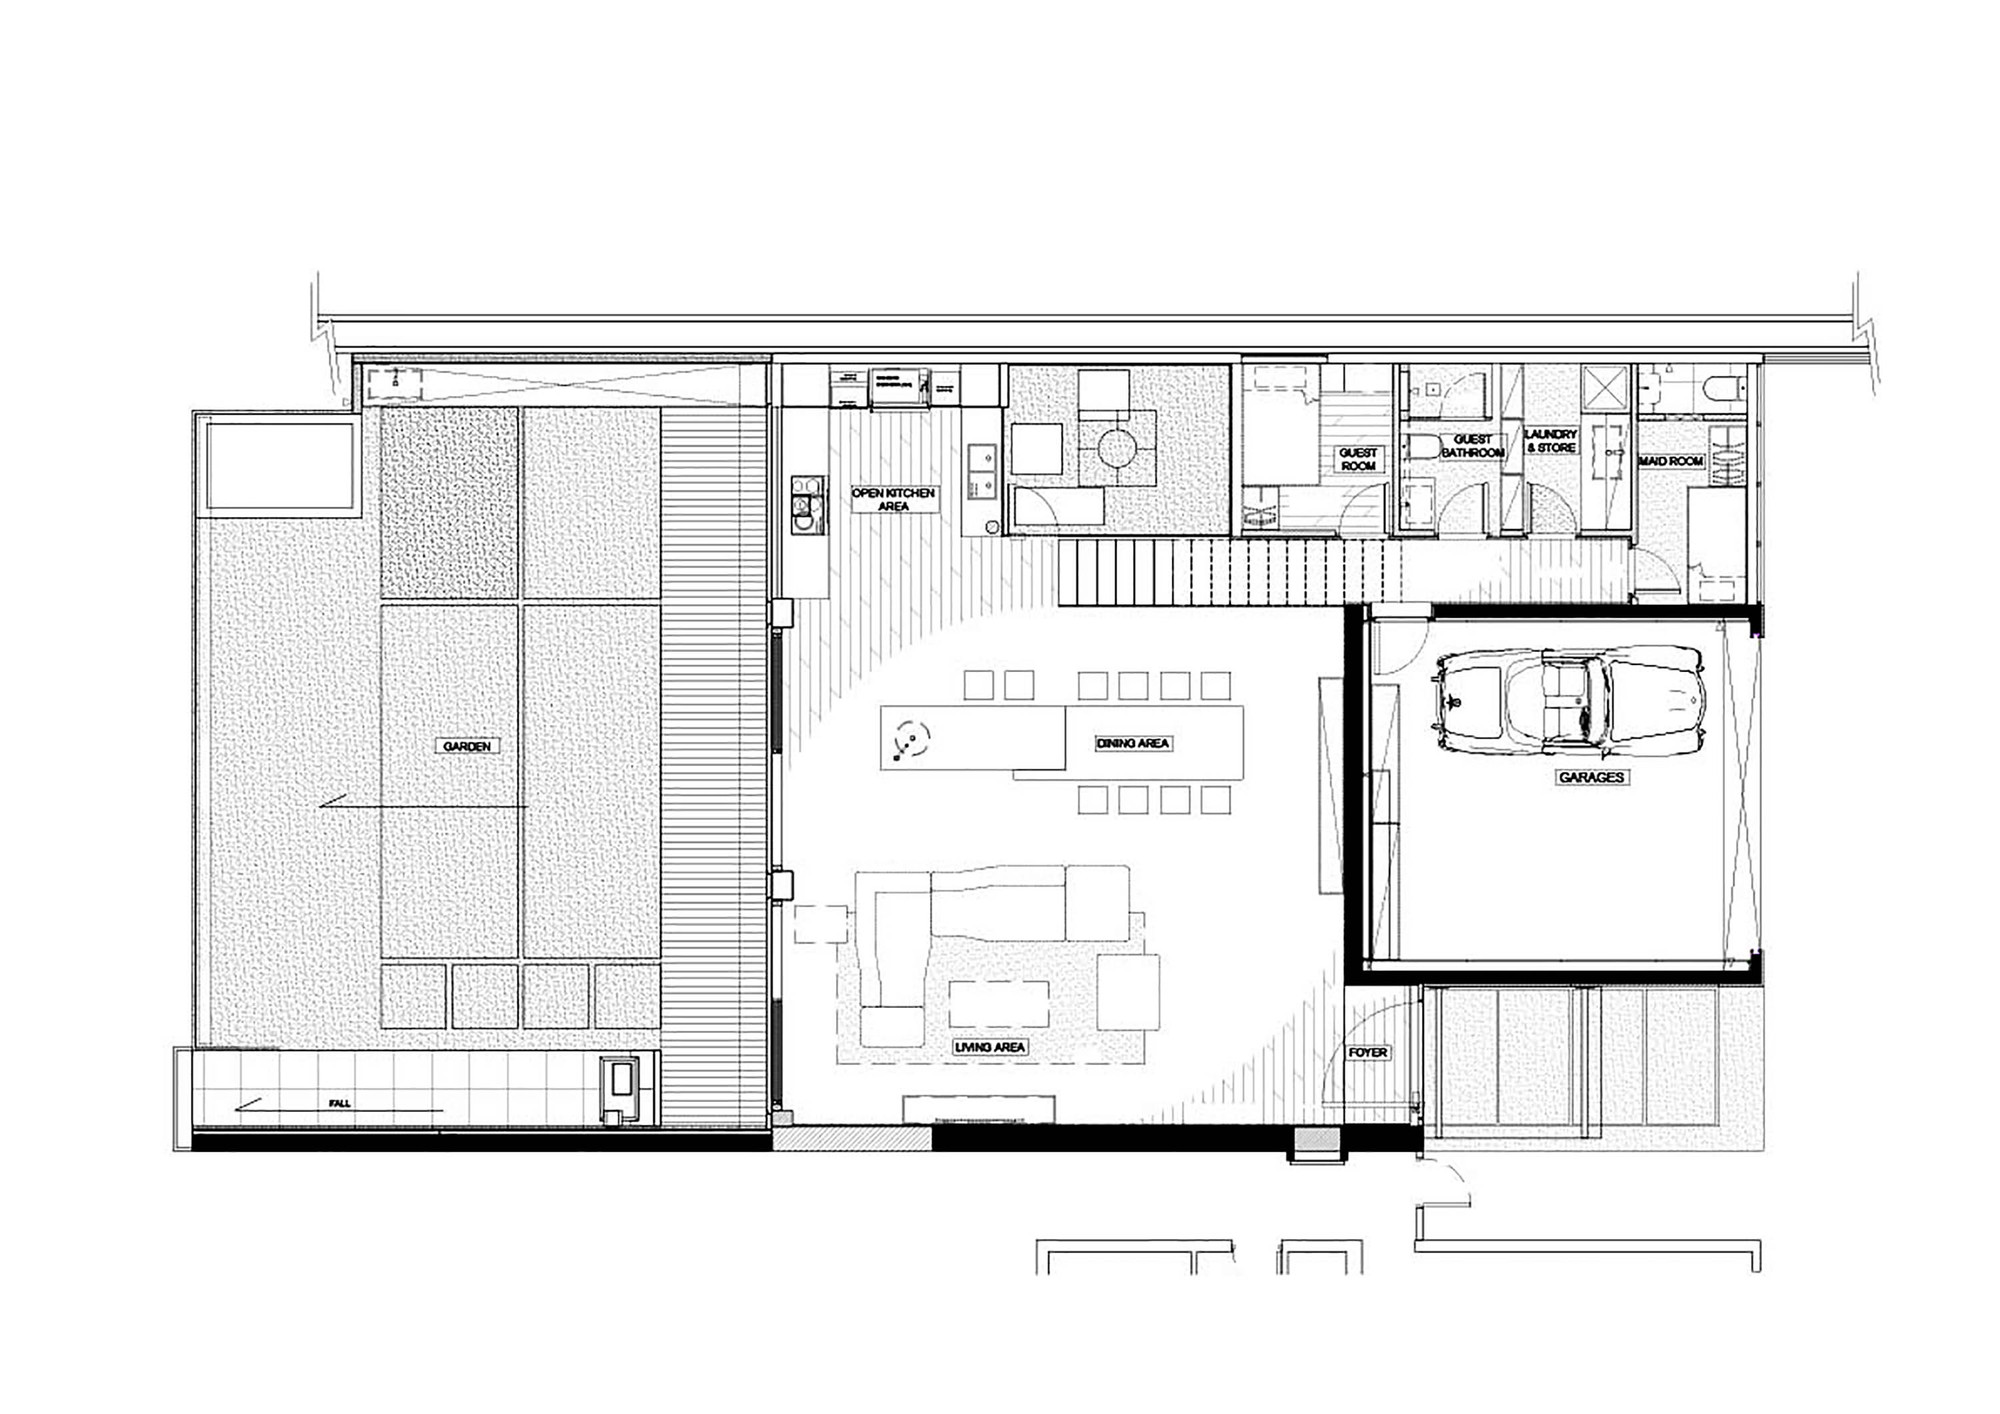 House in shatin mid level millimeter interior design limited ground floor plan